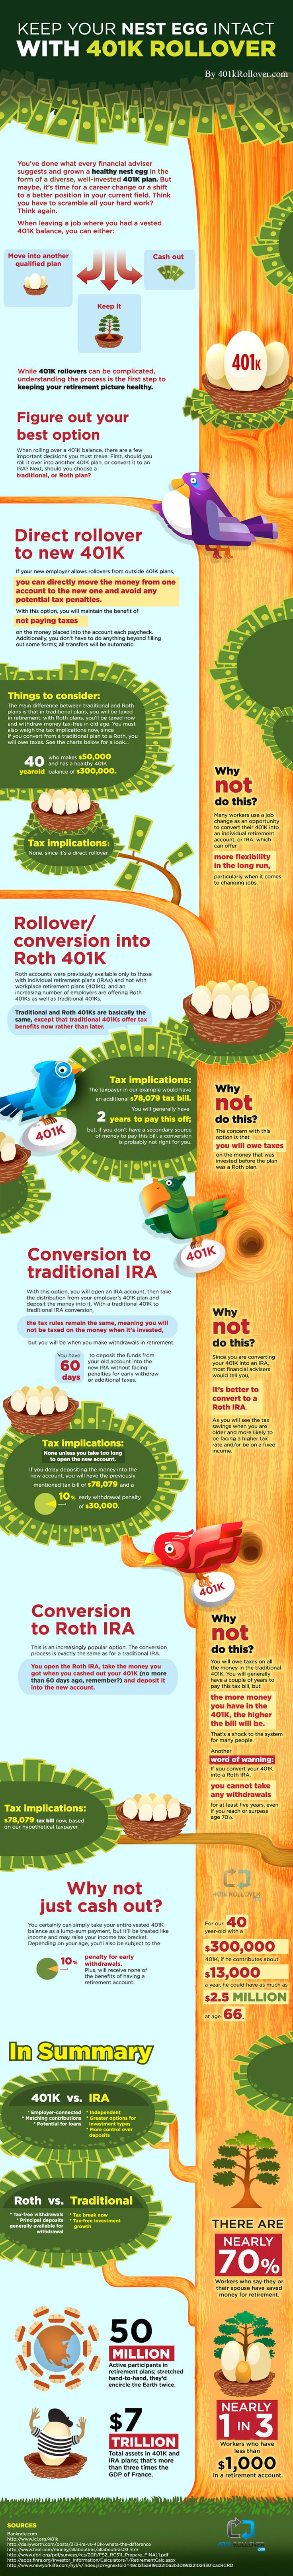 401k Rollover Infographic - Keep Your Nest Egg Intact with 401k Rollover. In our current economy, personal finance is more important than ever and handling your 401k can be a mystifying process.